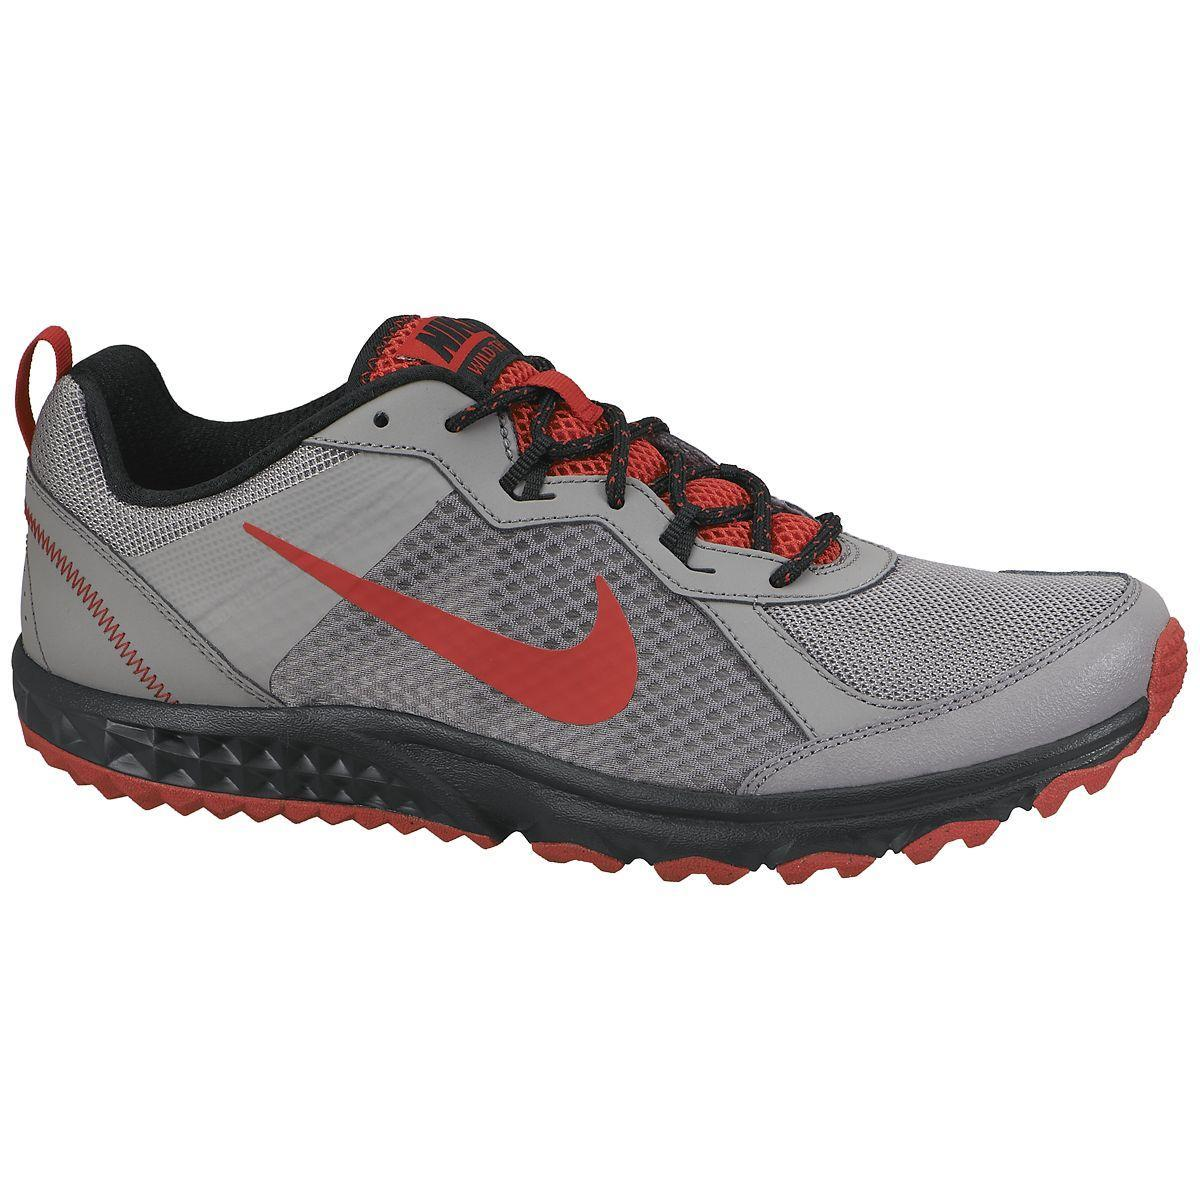 Mens Nike Trail Running Shoes 28 Images Nike Trail